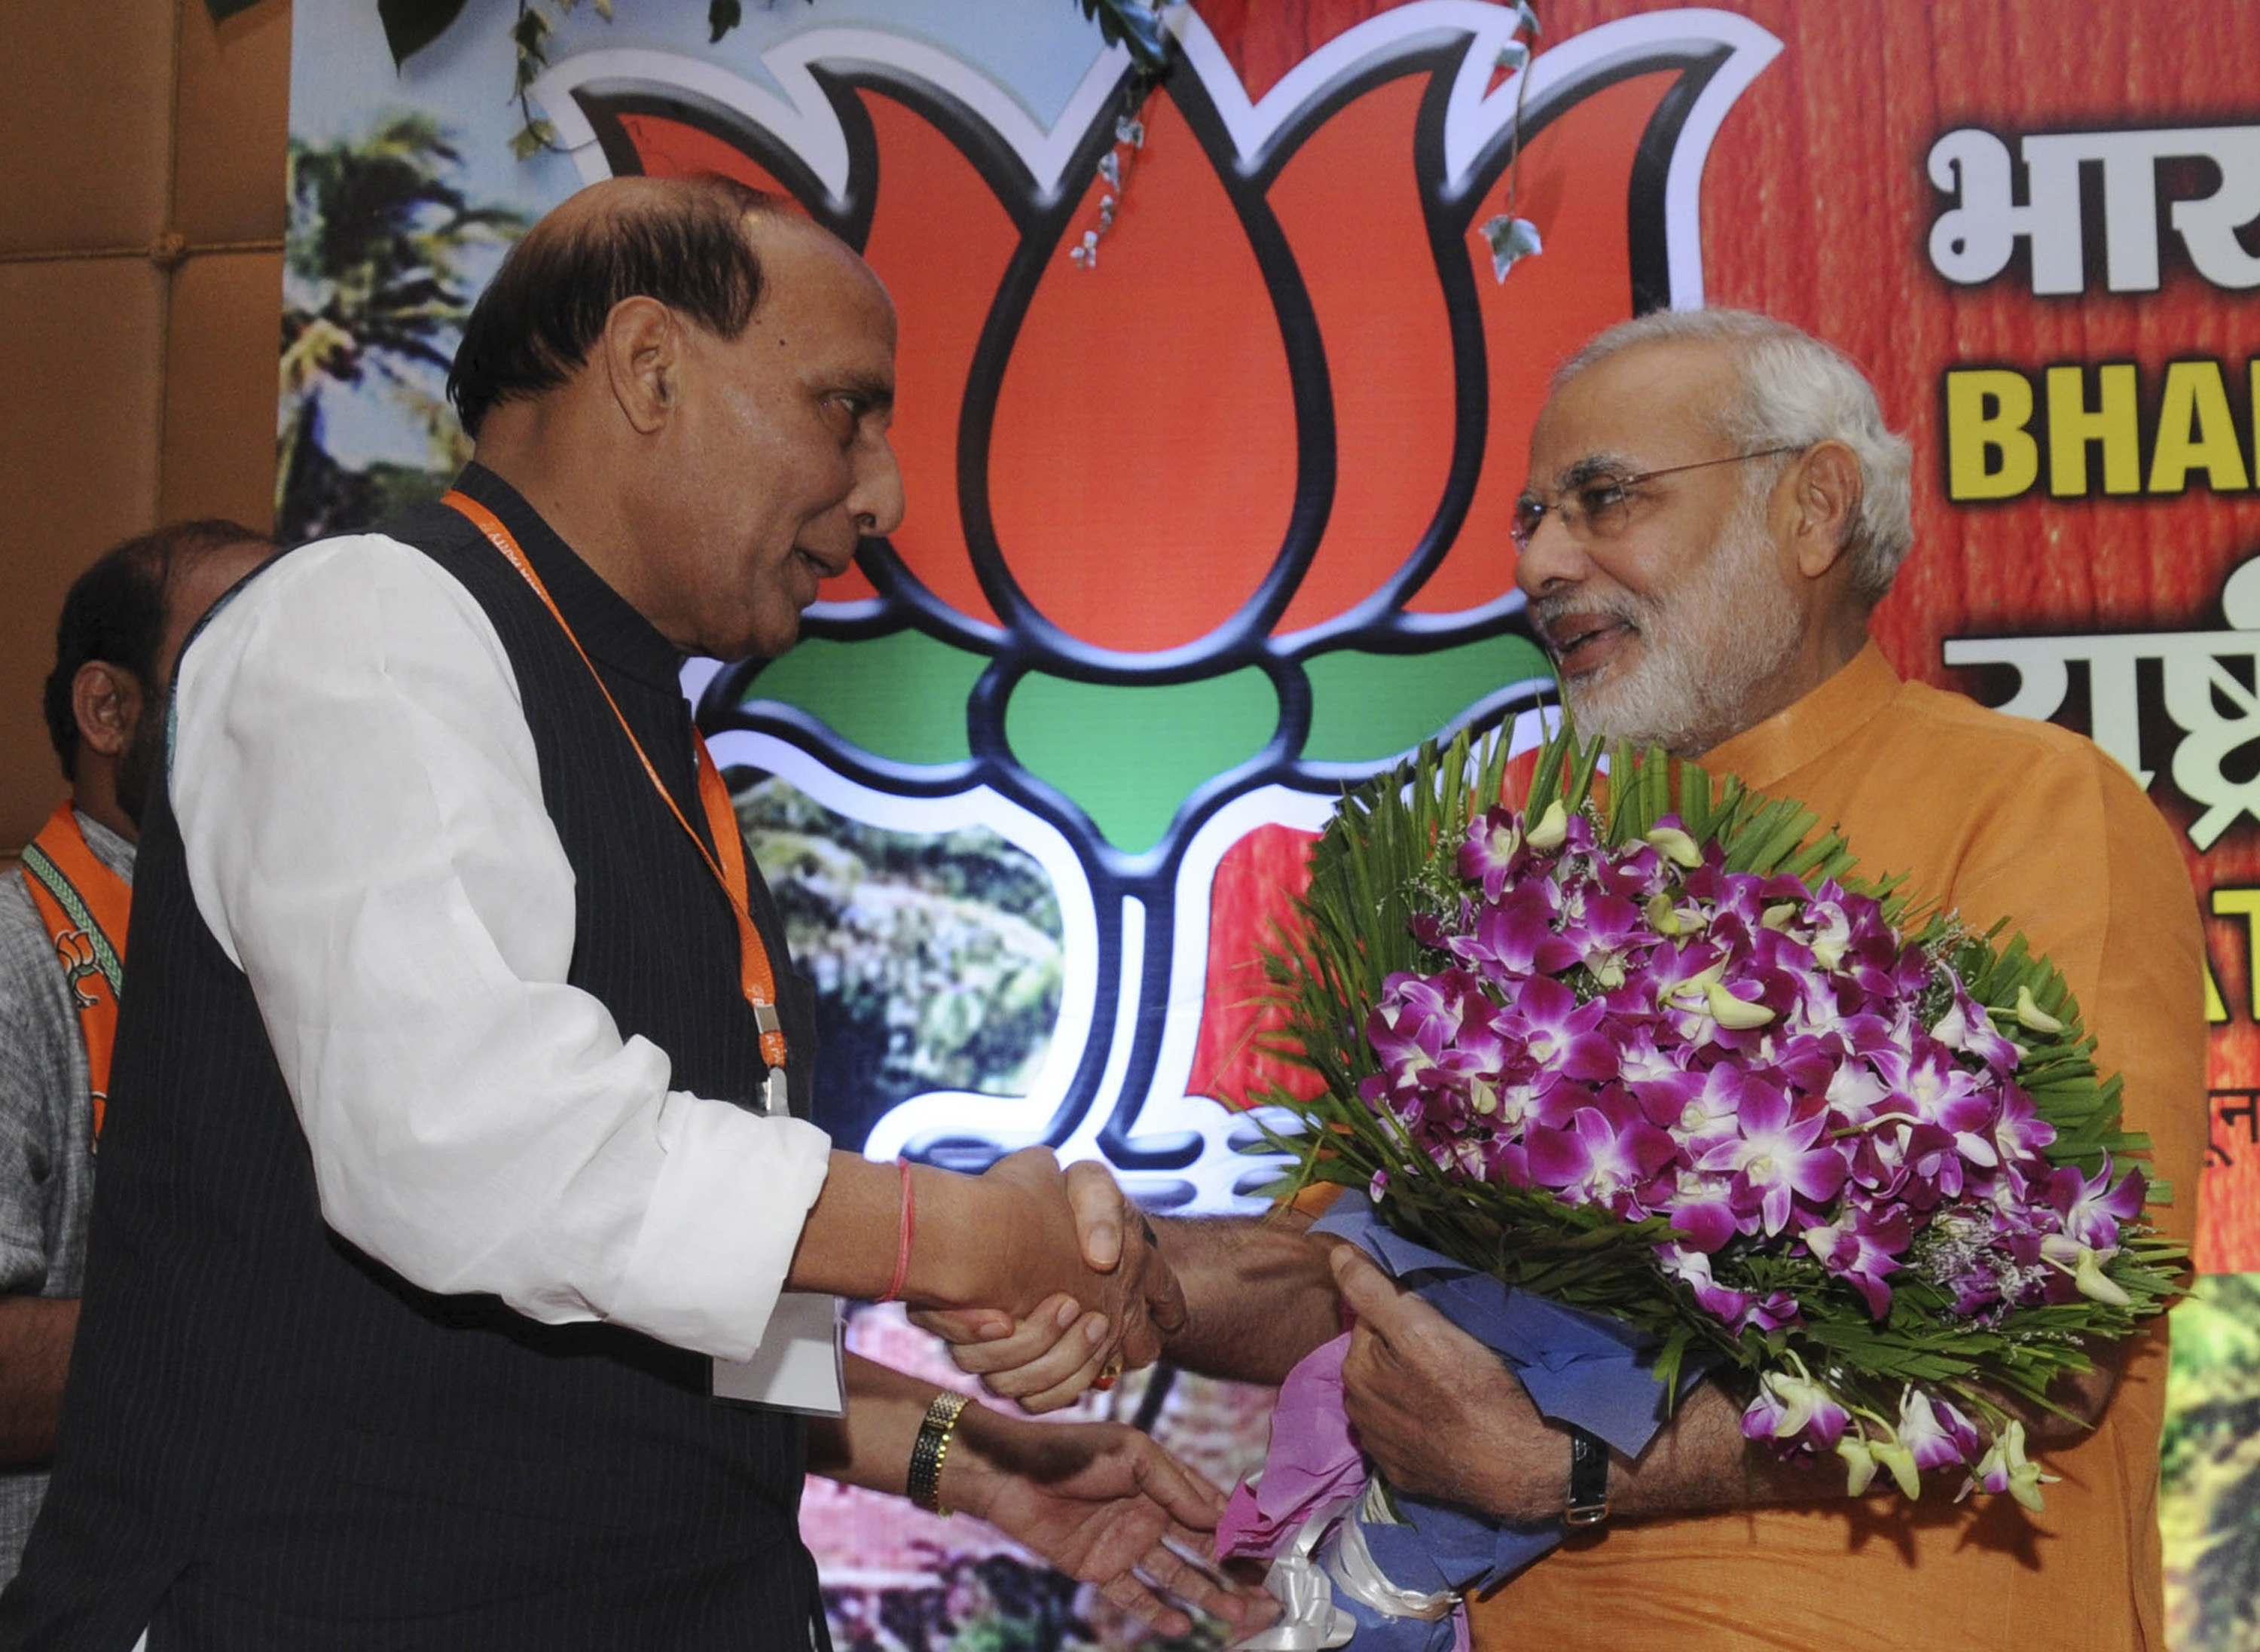 Up election 2017 behind sp congress alliance lies the open pursuit of a polarisating agenda firstpost - Friends We Met In The First Week Of March At The Last Executive Committee Meeting In Delhi Since Then Many New Develpments Have Taken Place